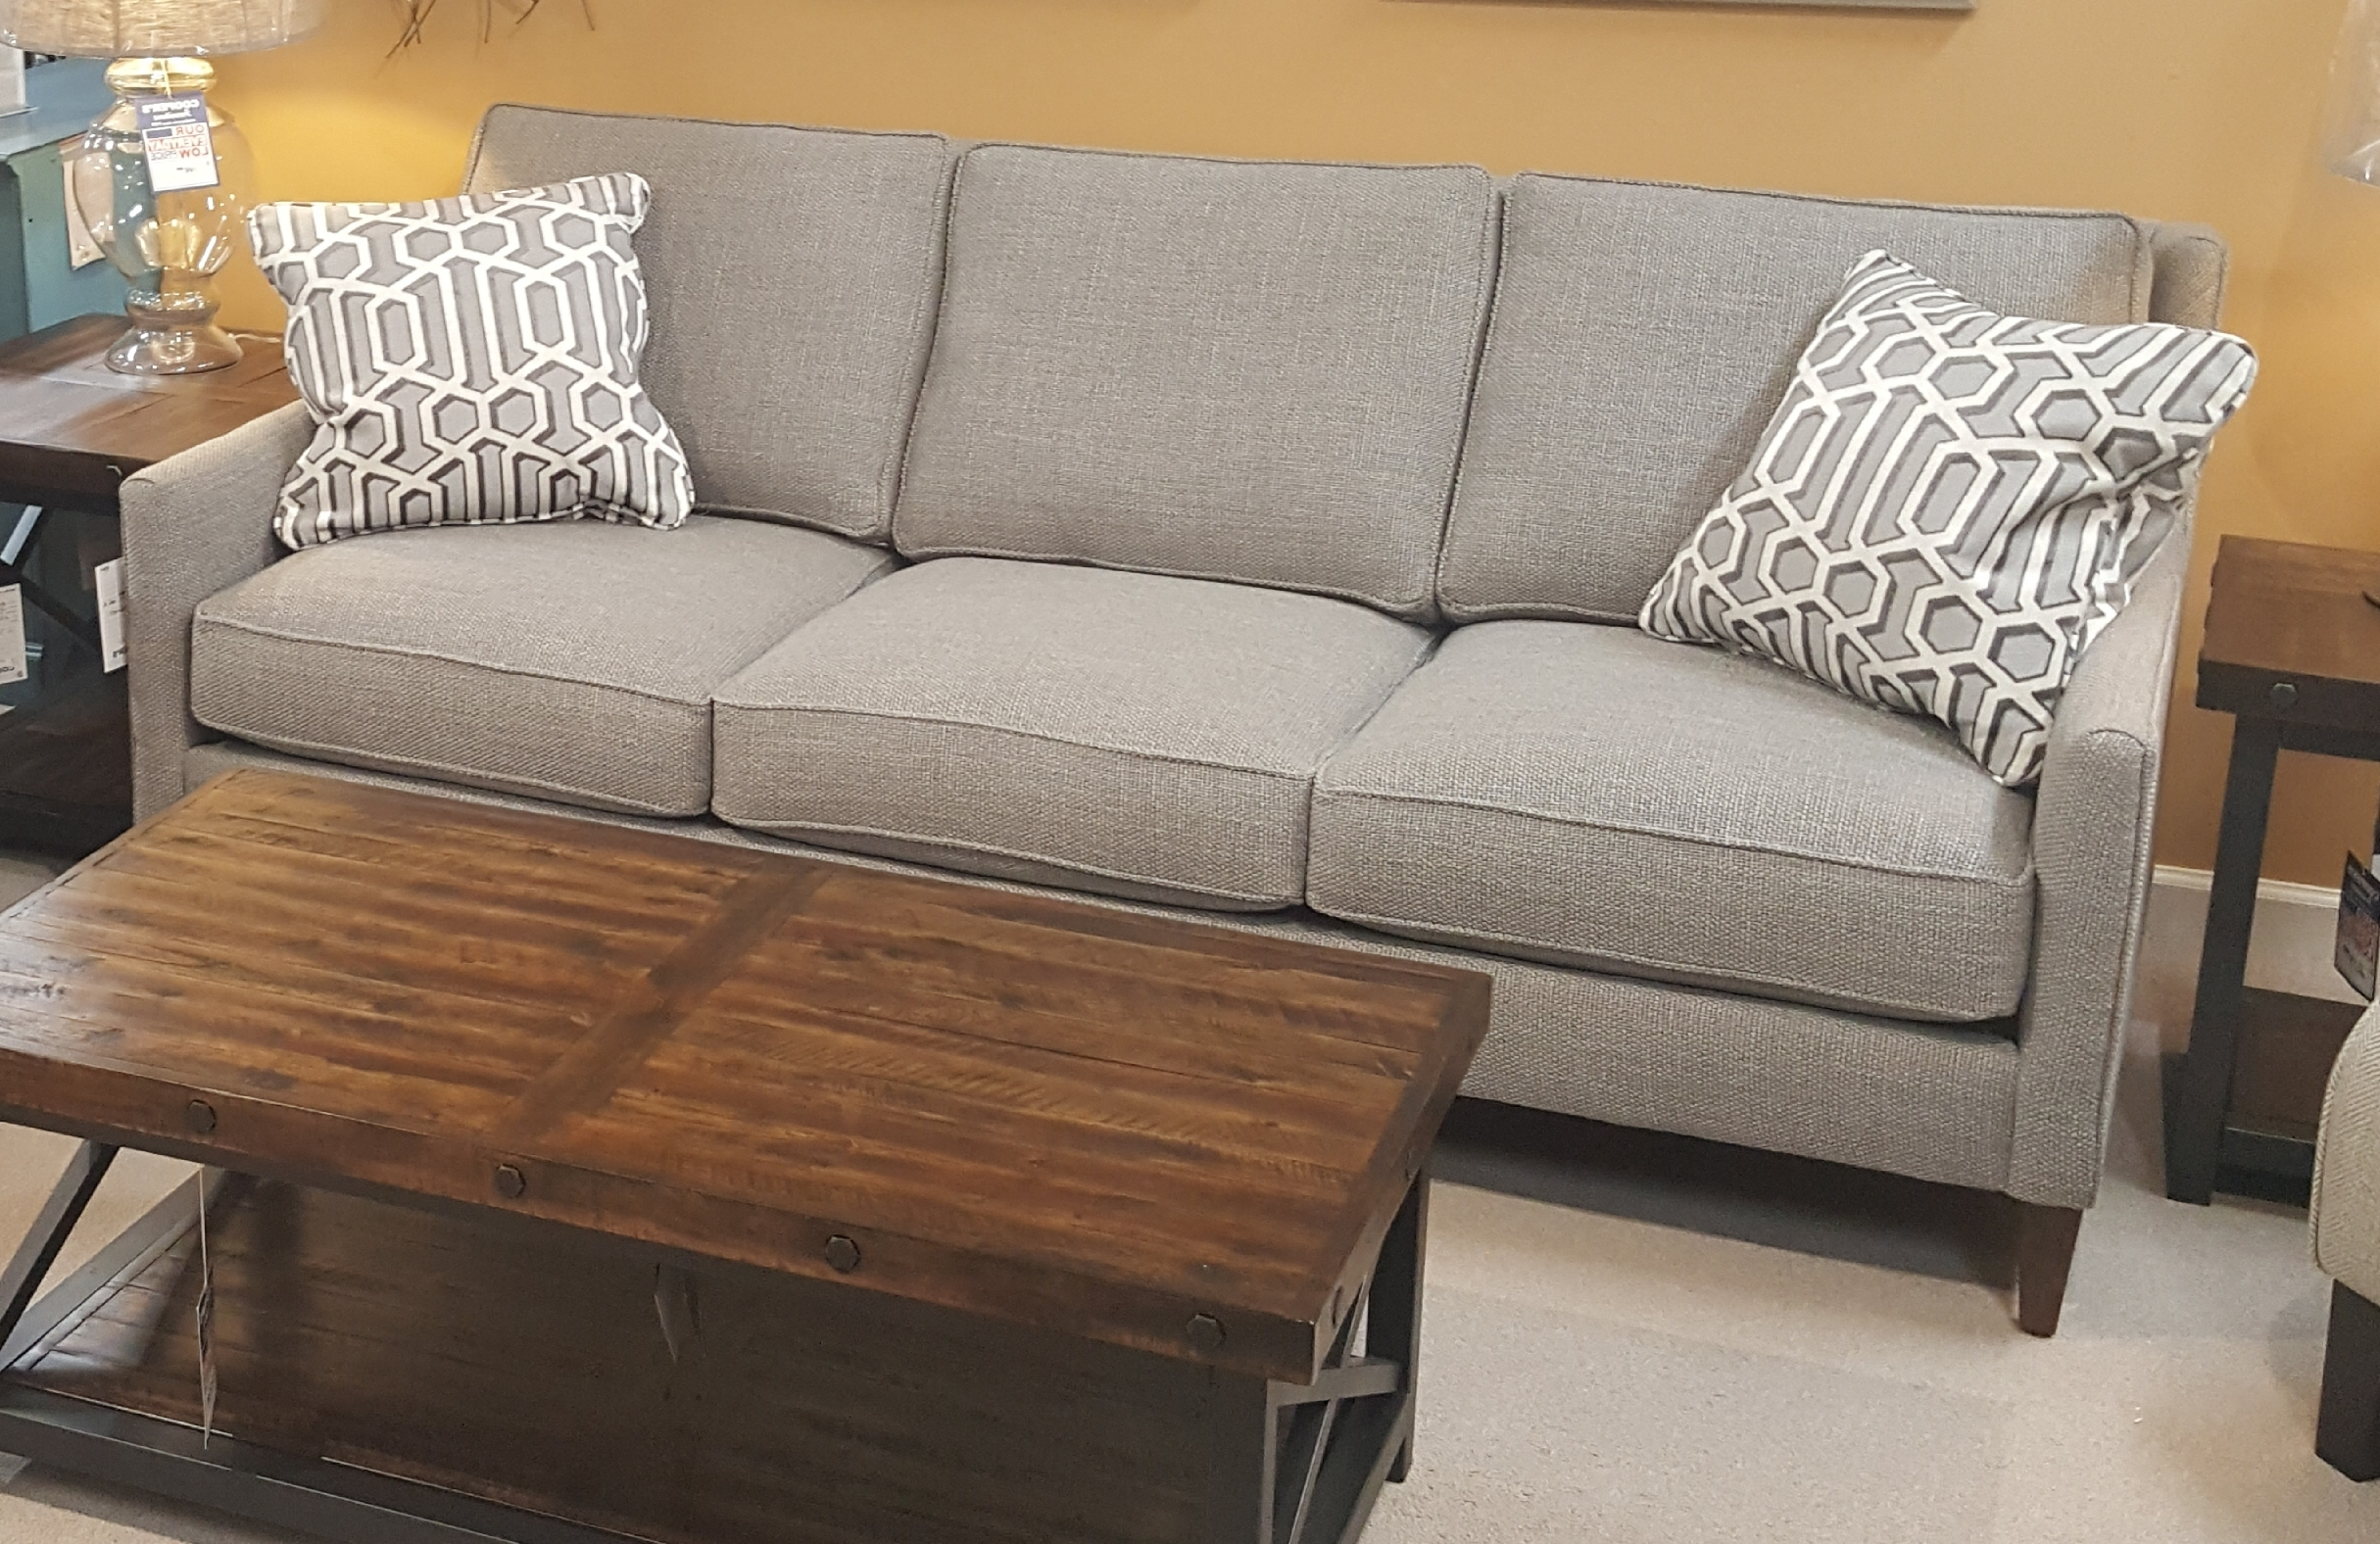 Durham Region Sectional Sofas With Regard To 2018 Living Room Furniture Cary Nc (View 6 of 15)